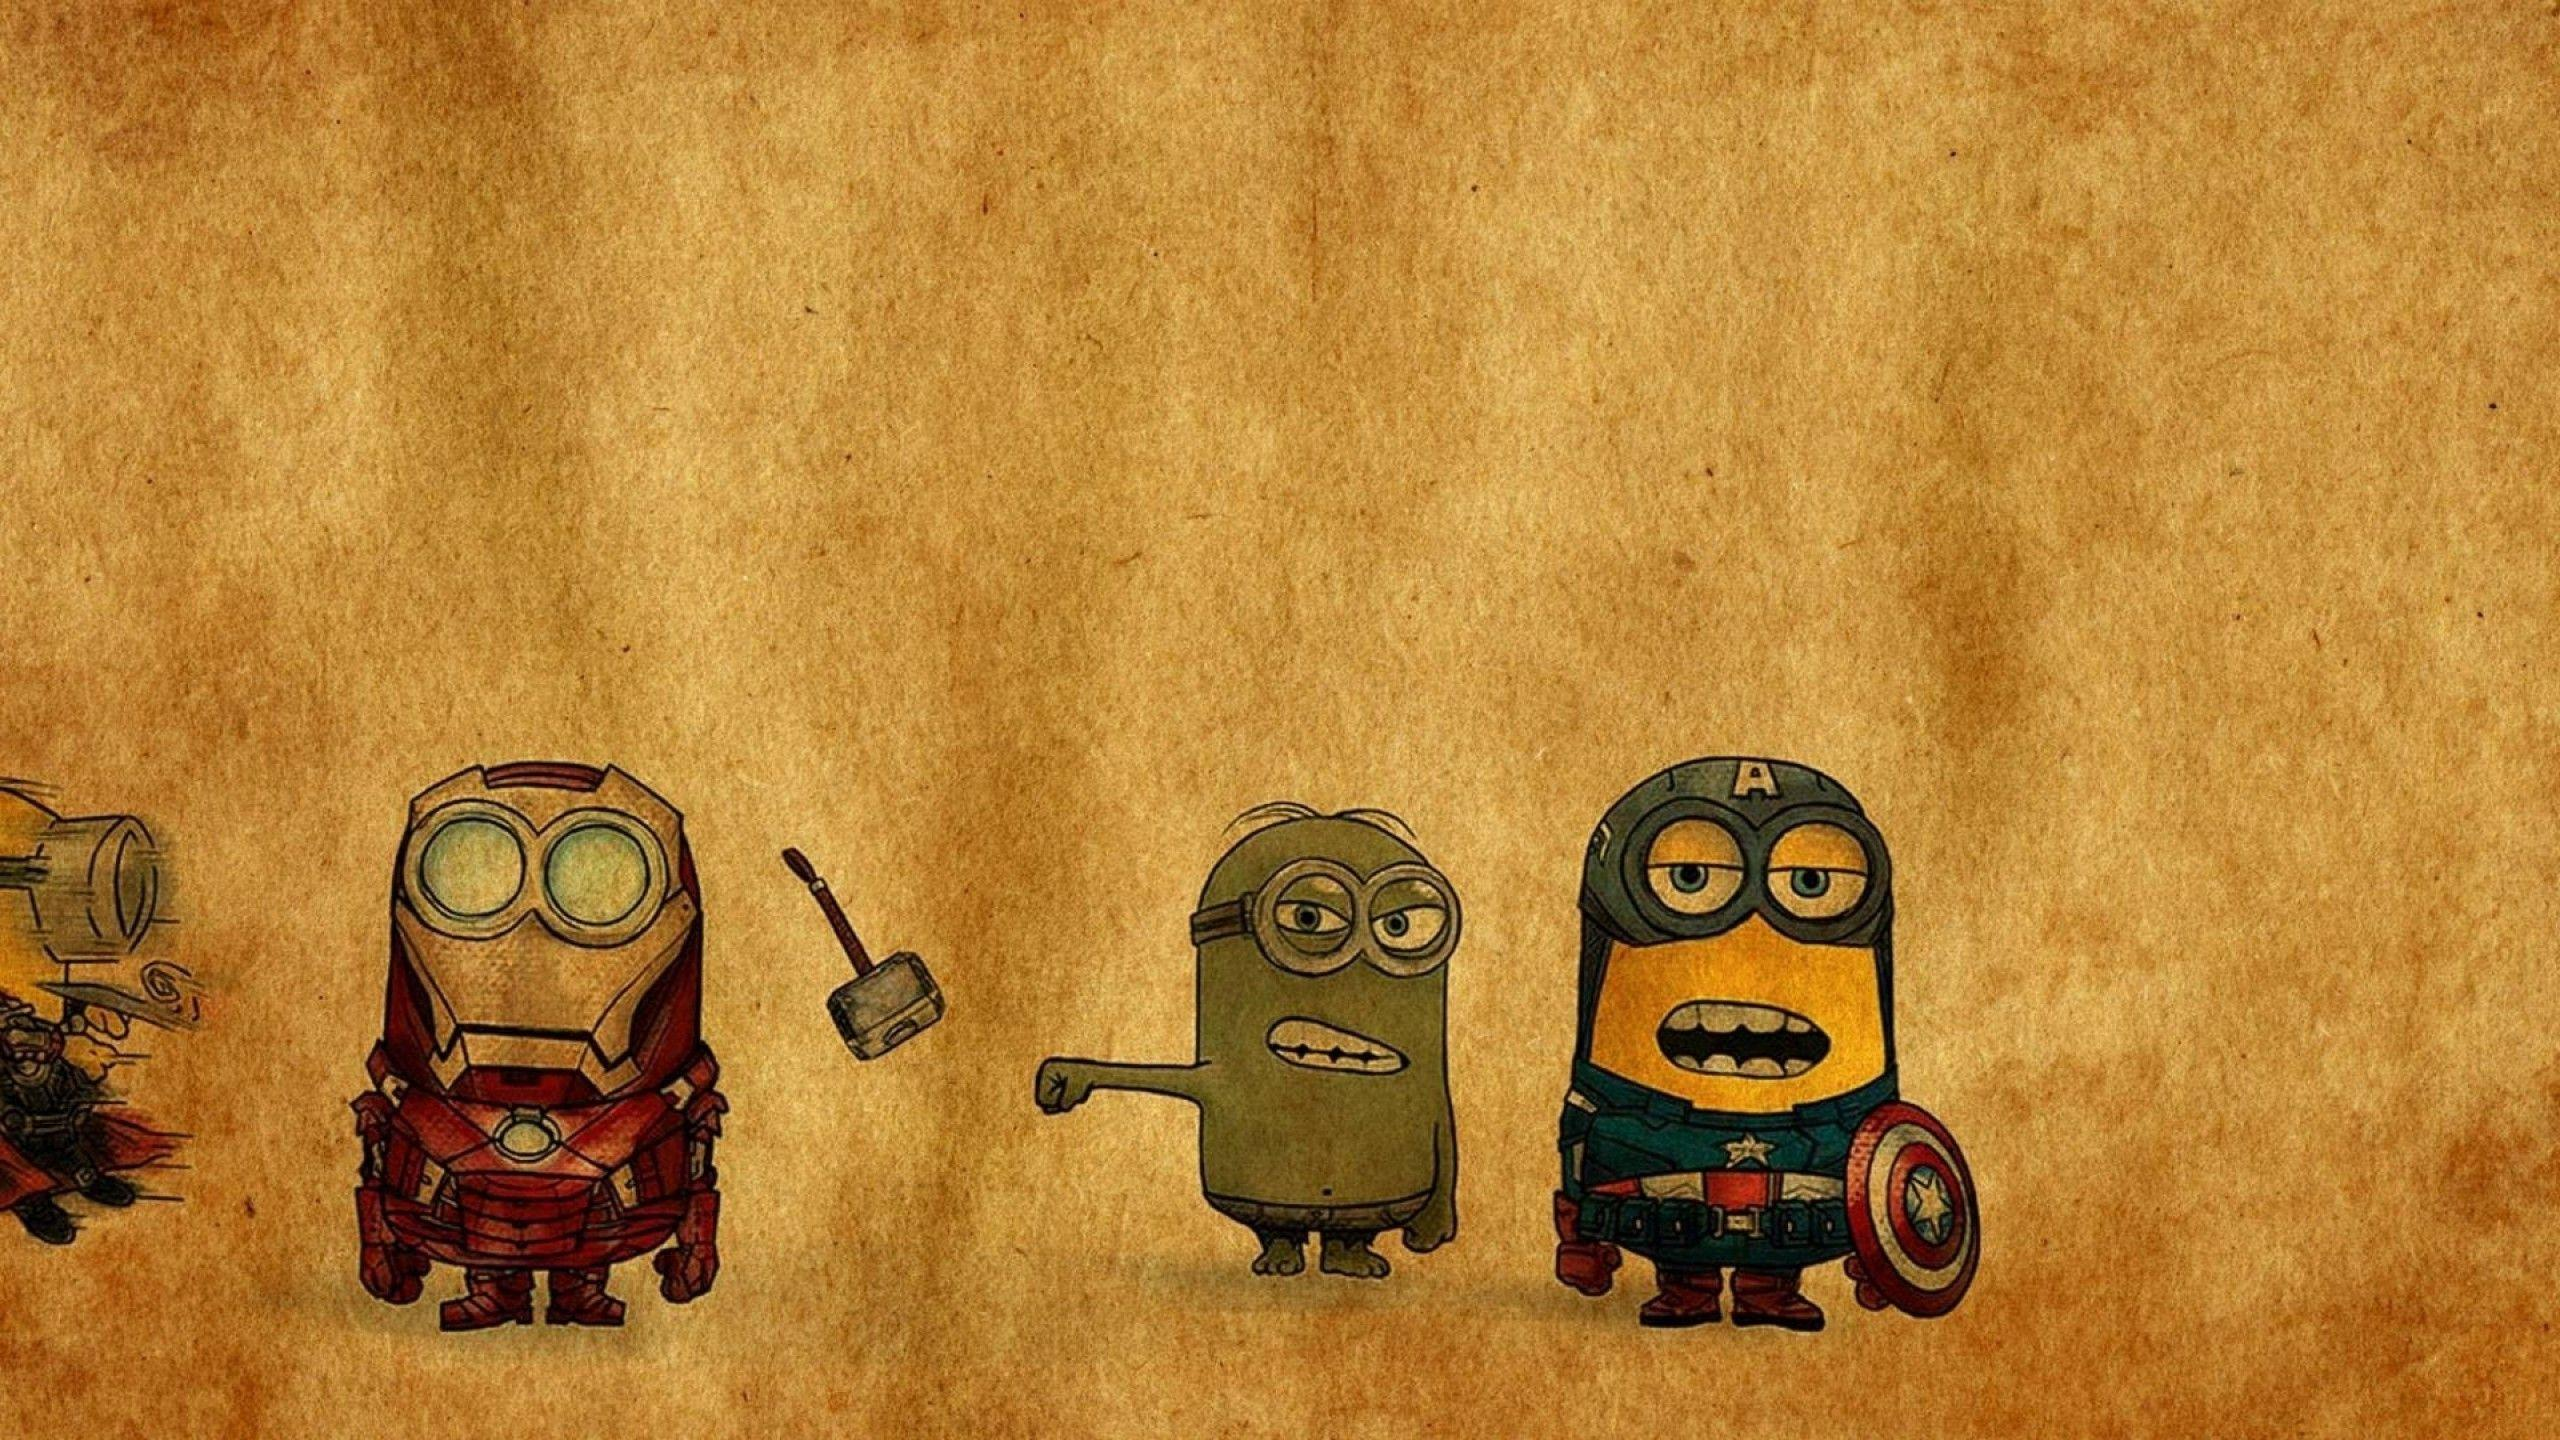 Avenger minions Wallpaper #